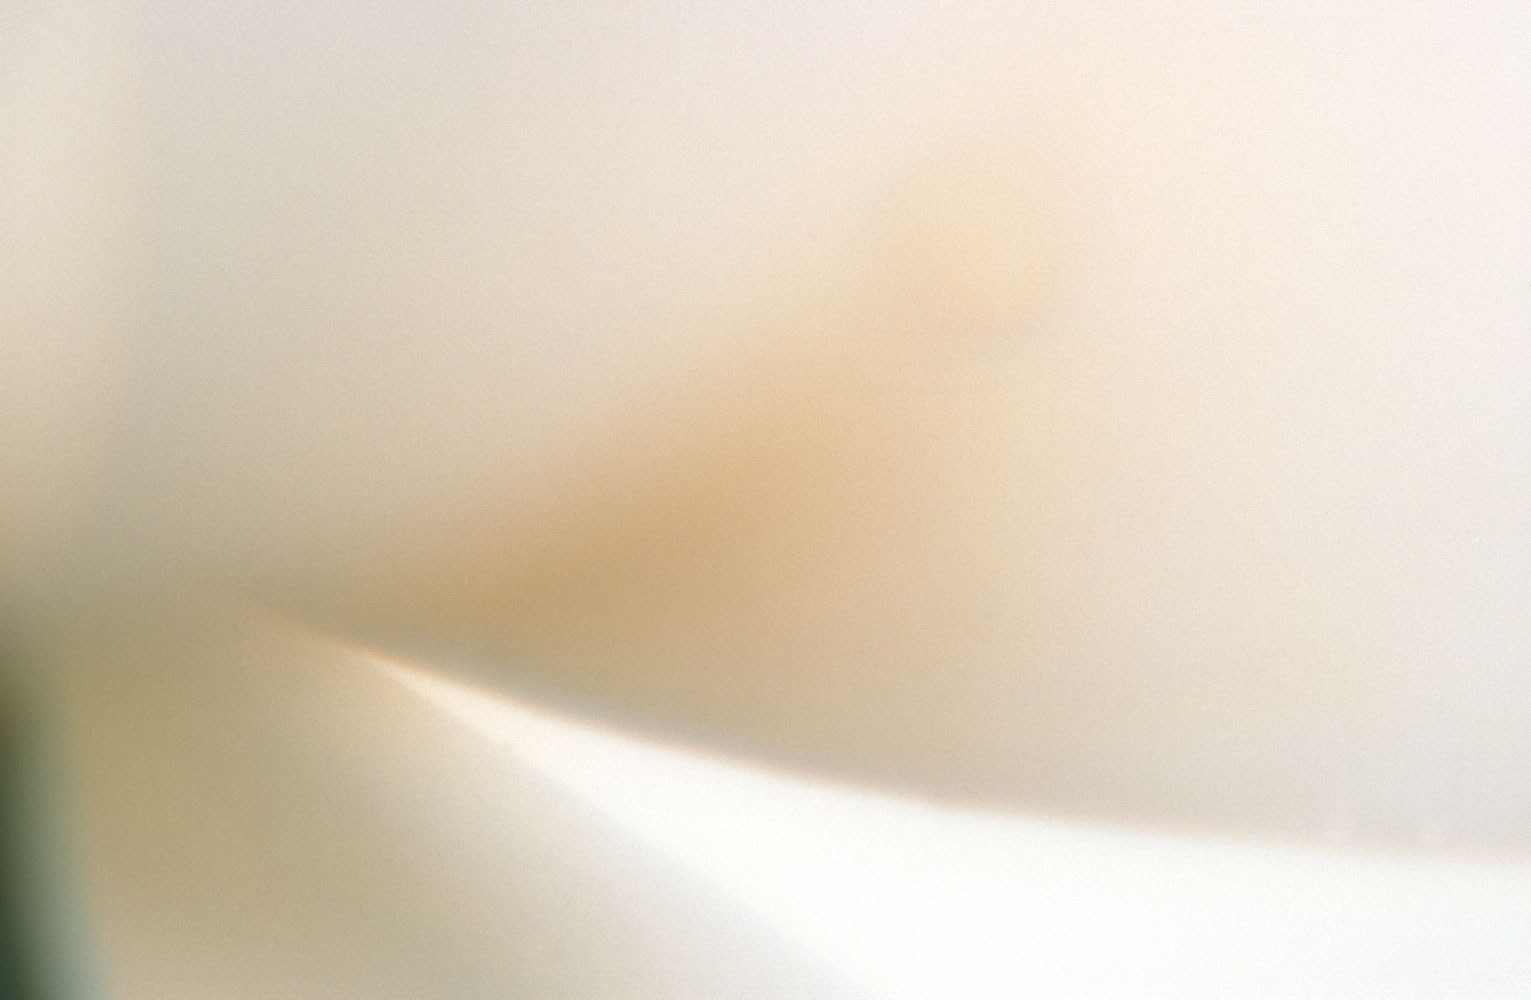 close:   lily   sensual   curves   tender   ivory   loins  surrender  intimacy   grace   serene       abstract